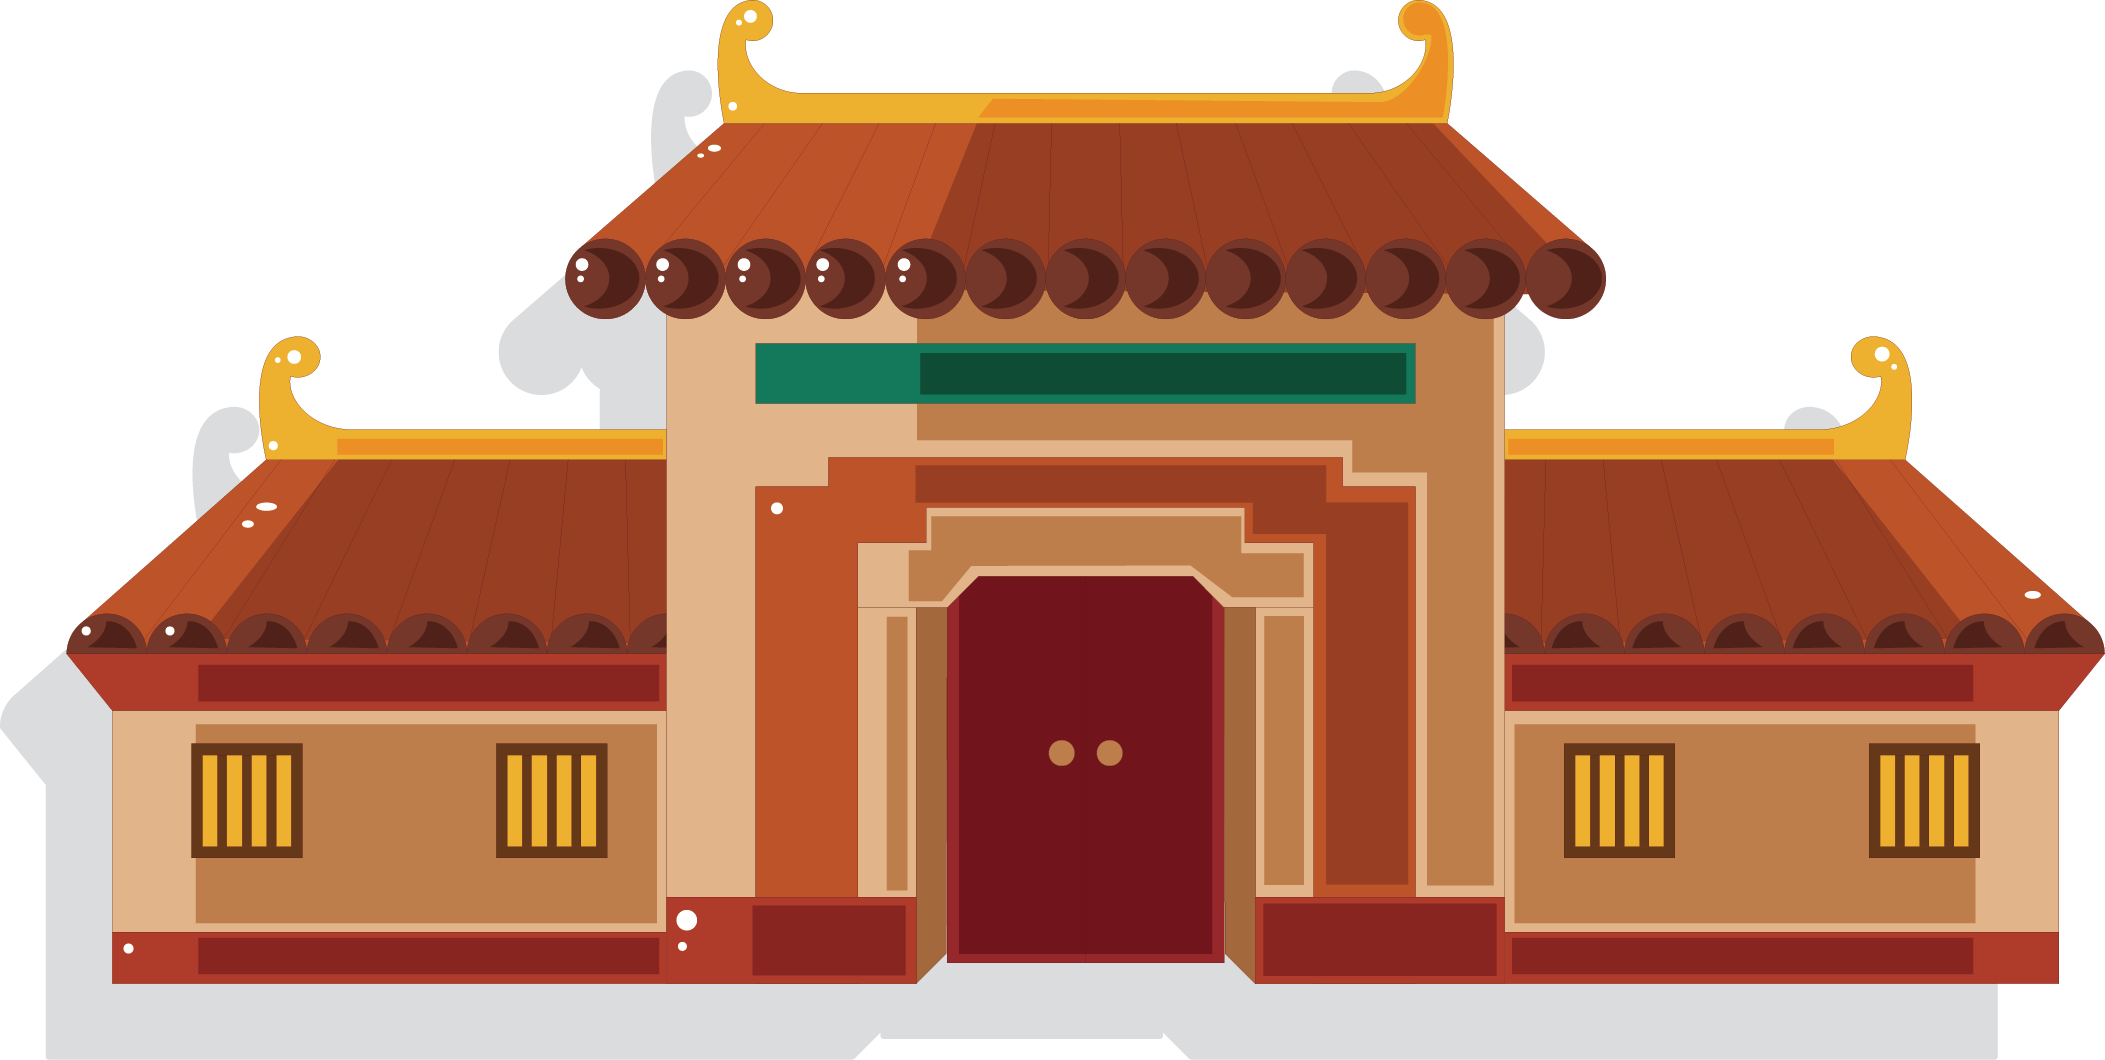 China architecture building house. Palace clipart palace egypt